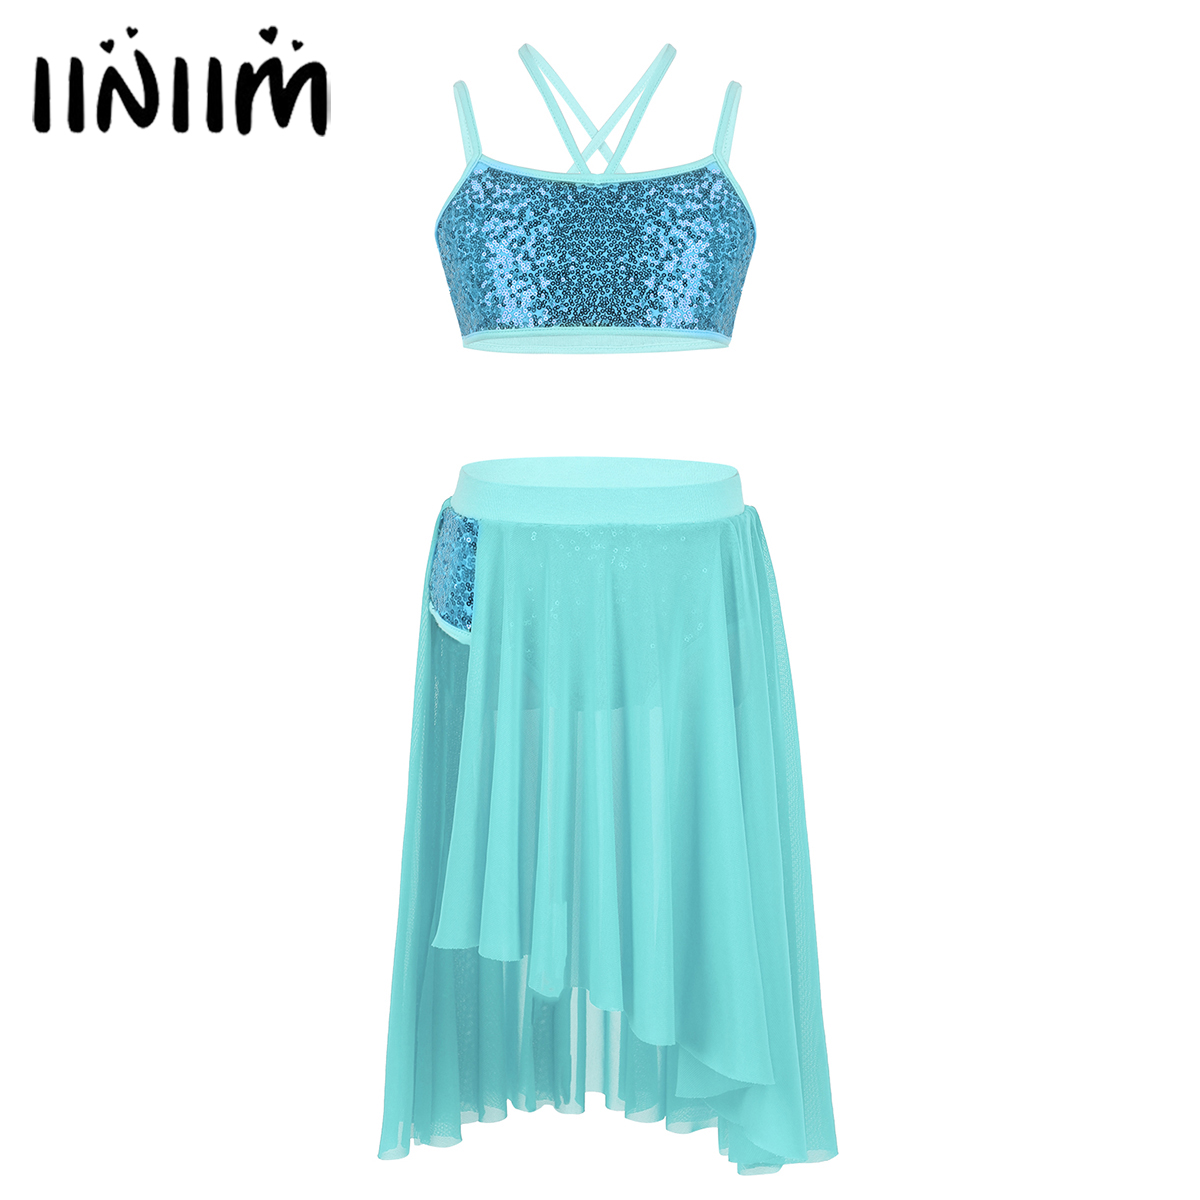 iiniim Girls Ballet Tutu Costumes Kids Teen Sequins Spaghetti Straps Crop Top with Tulle Skirt Gymnastics Leotard Dance Dress